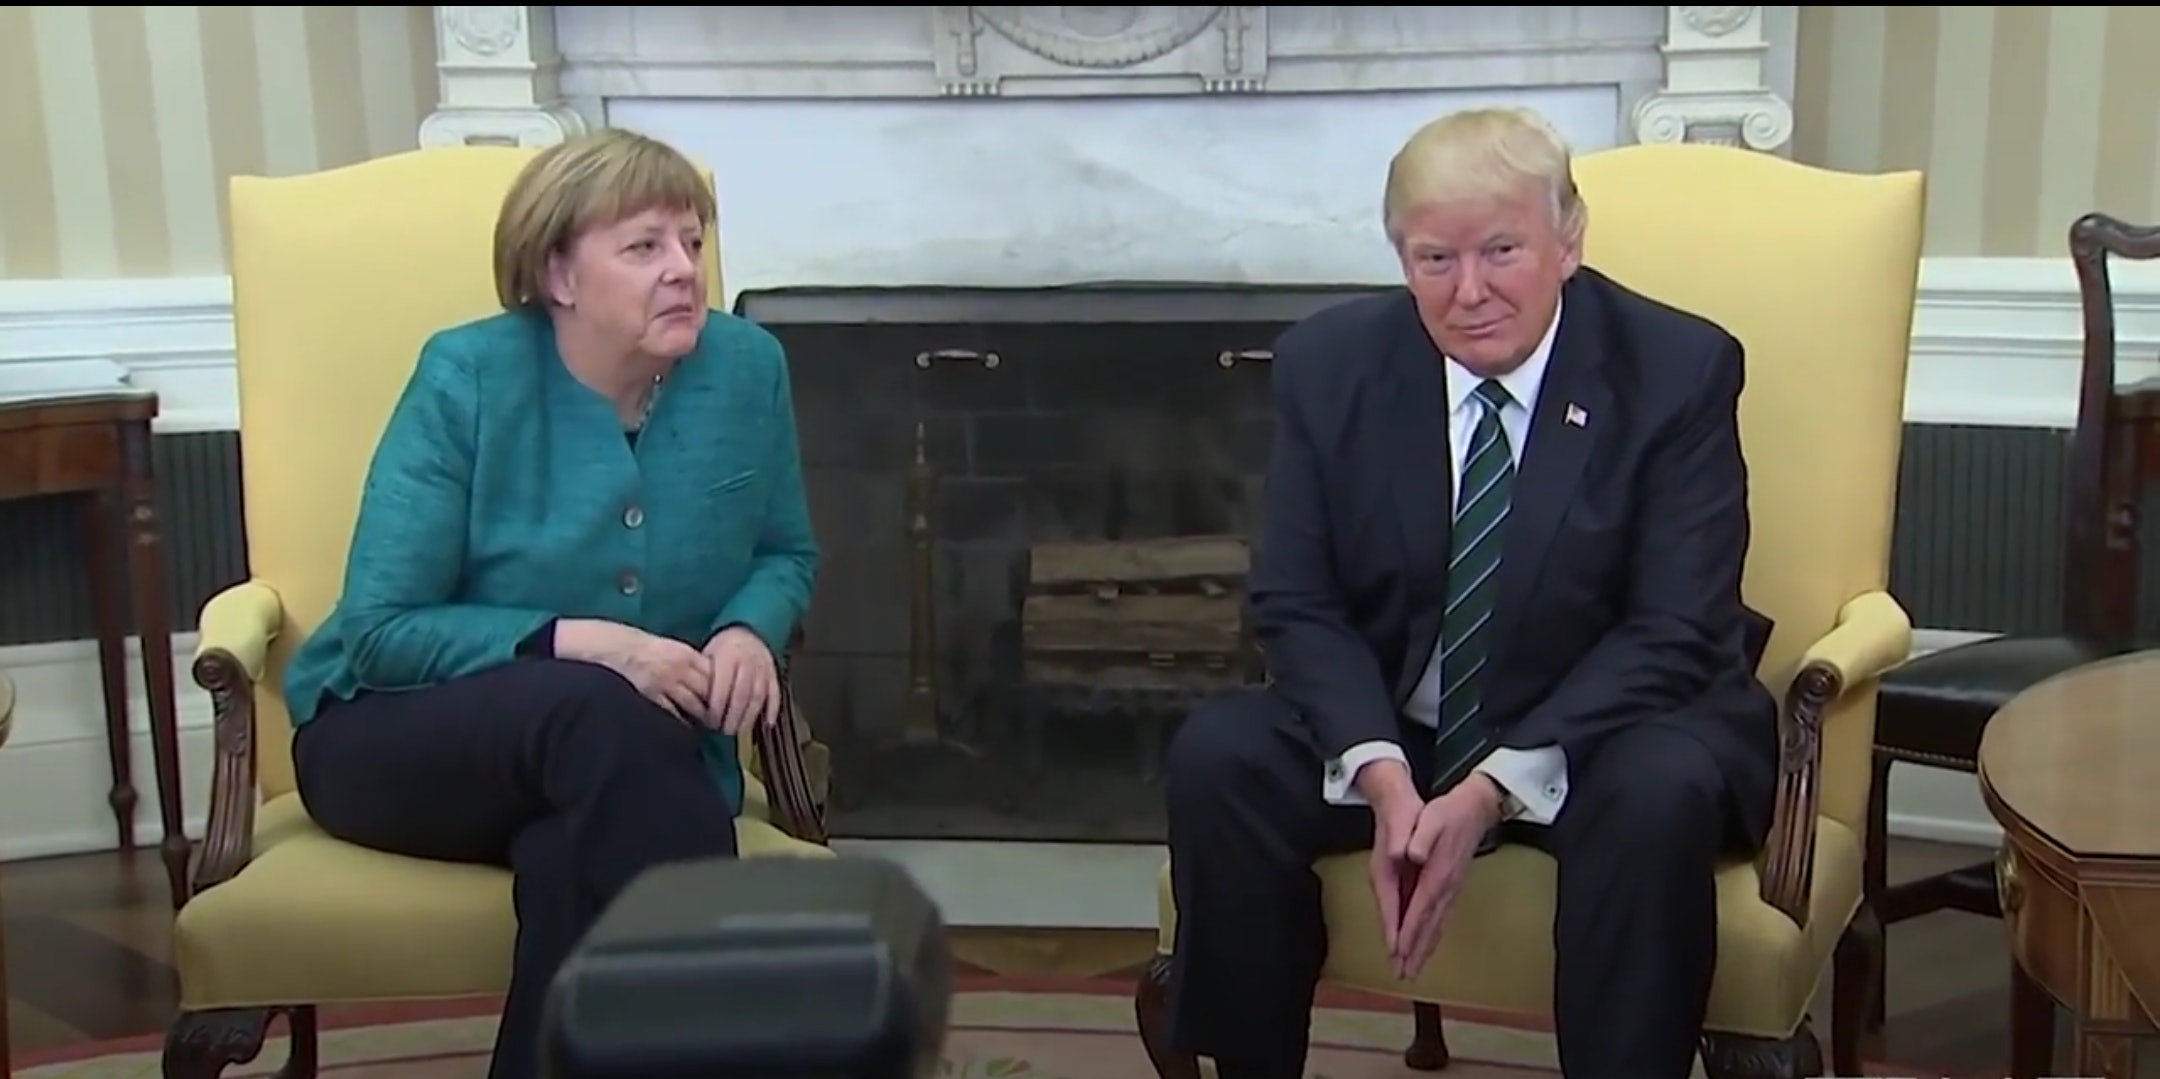 Donald Trump's refusal to shake Angela Merkel's hand serves as a reminder of the tensions between the two leaders.